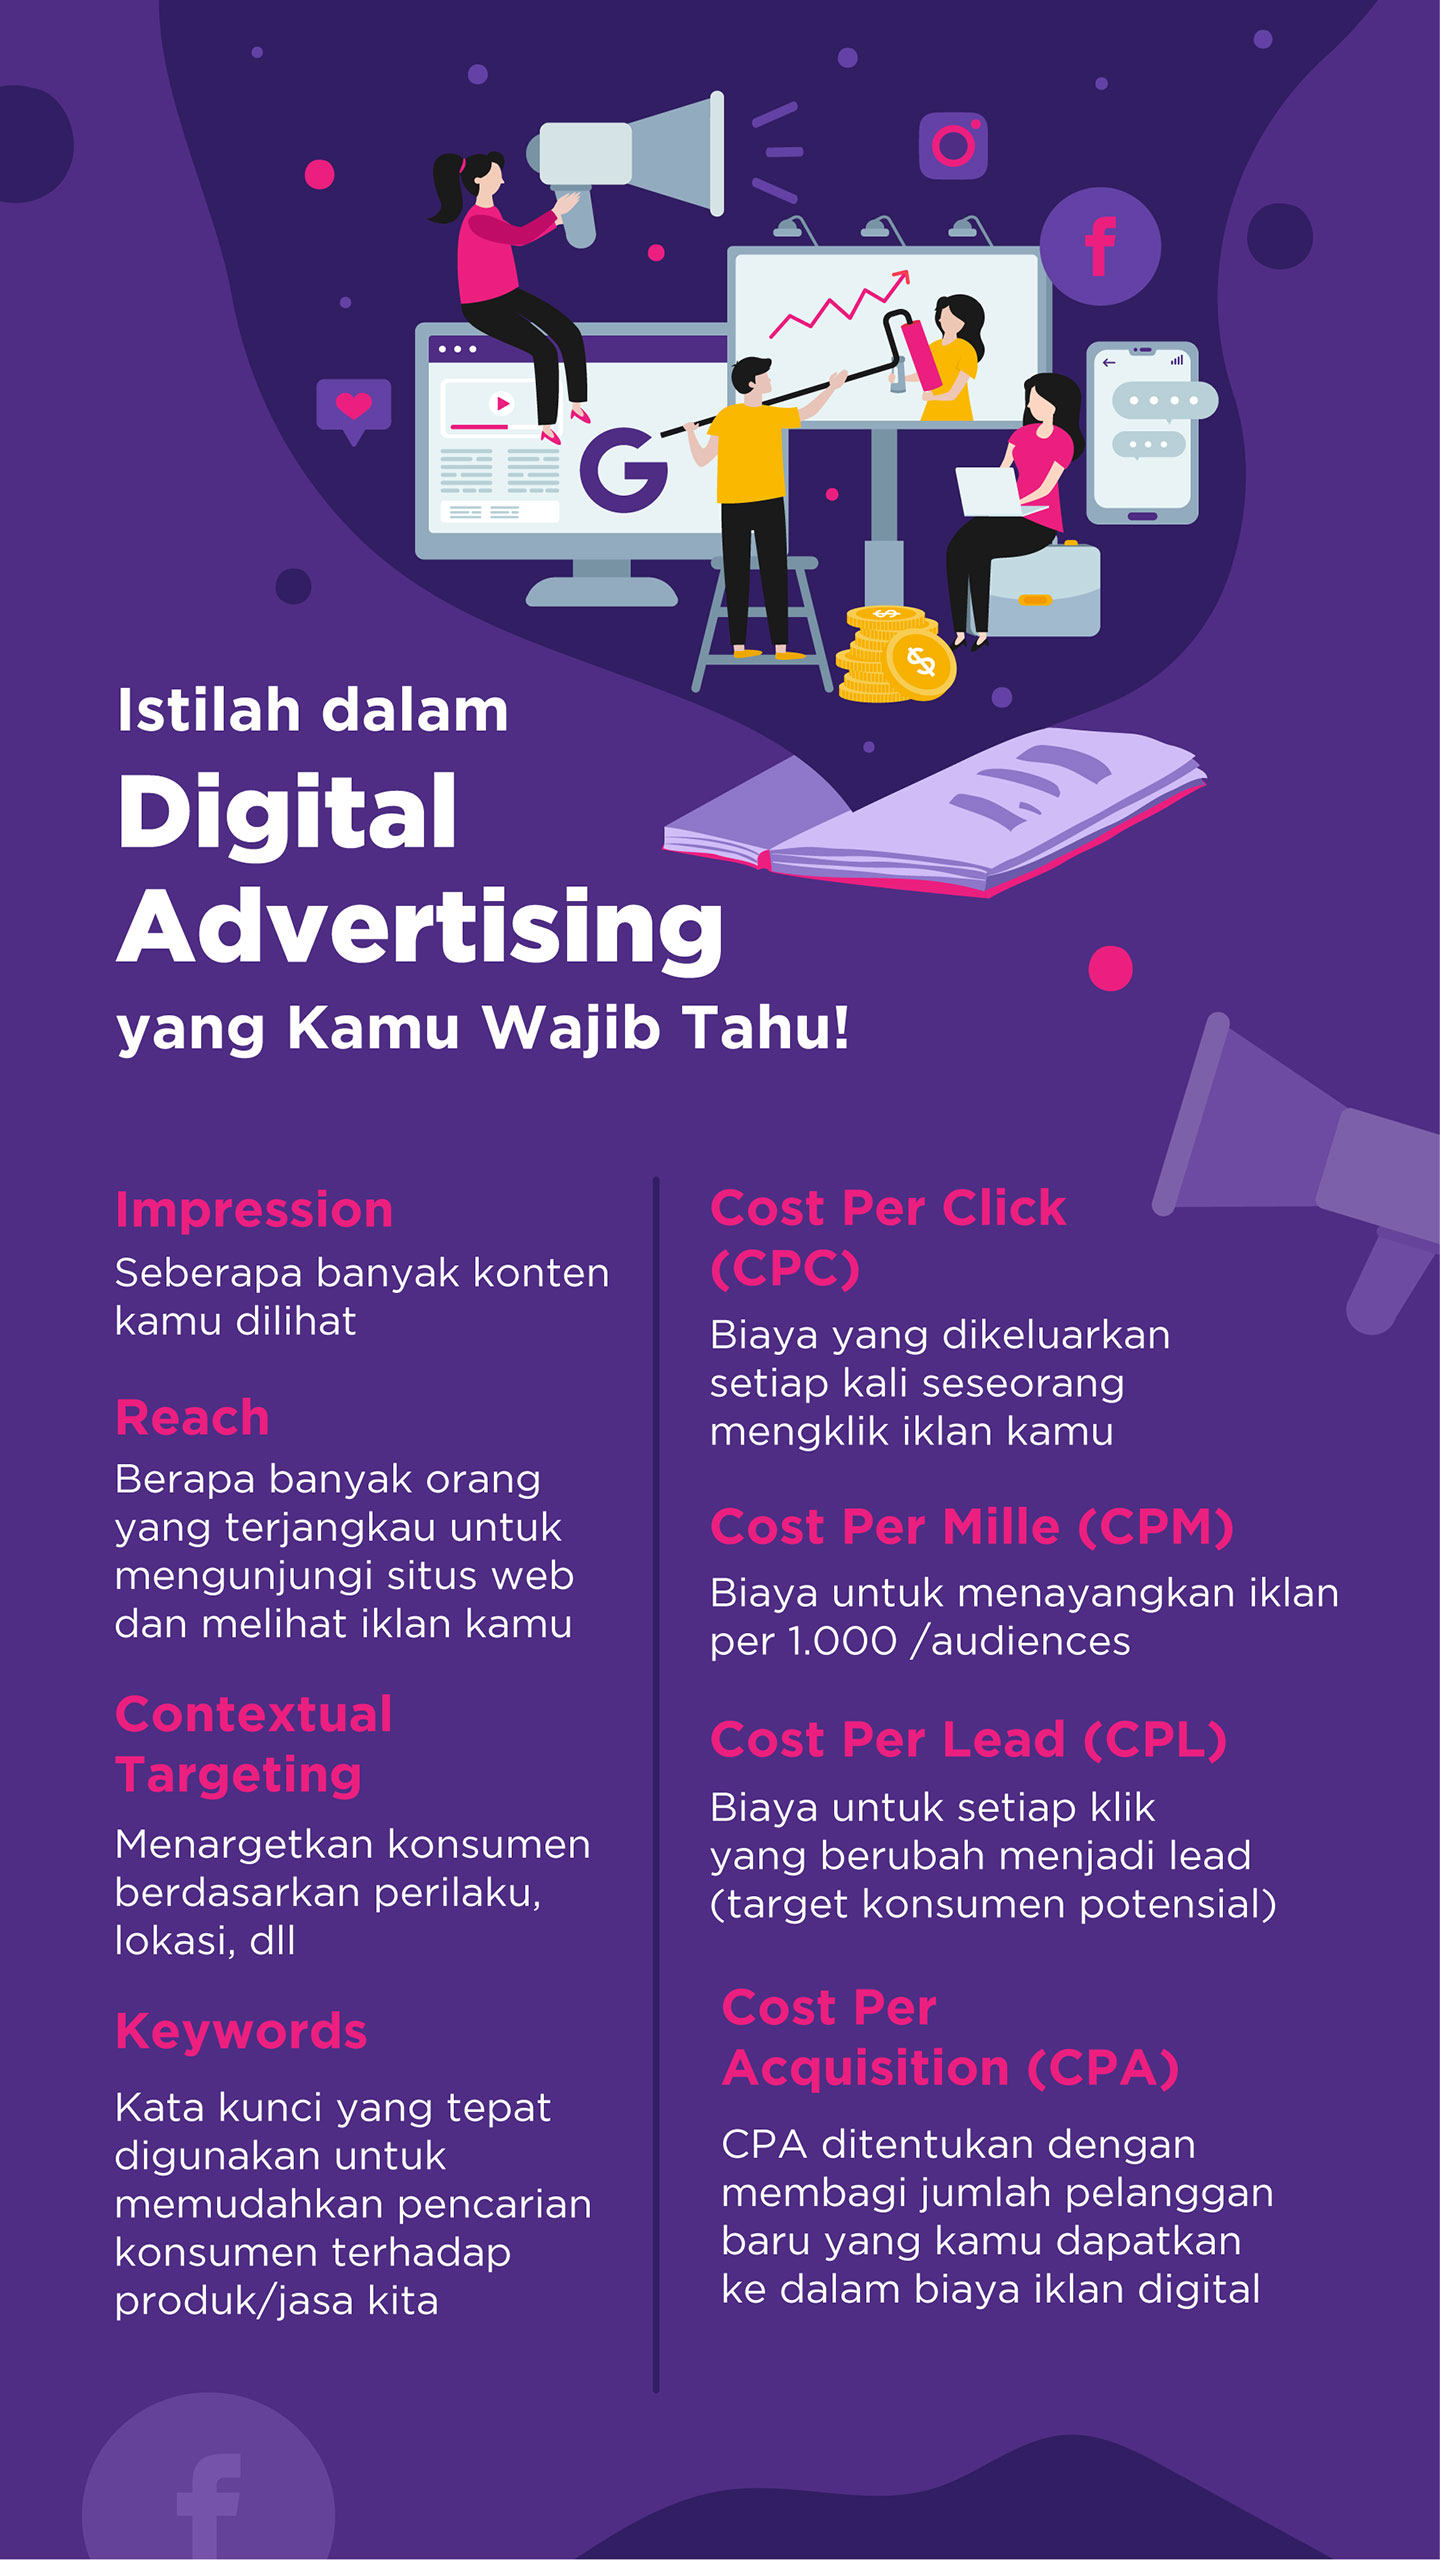 istilah-digital-advertising--infographic.jpg